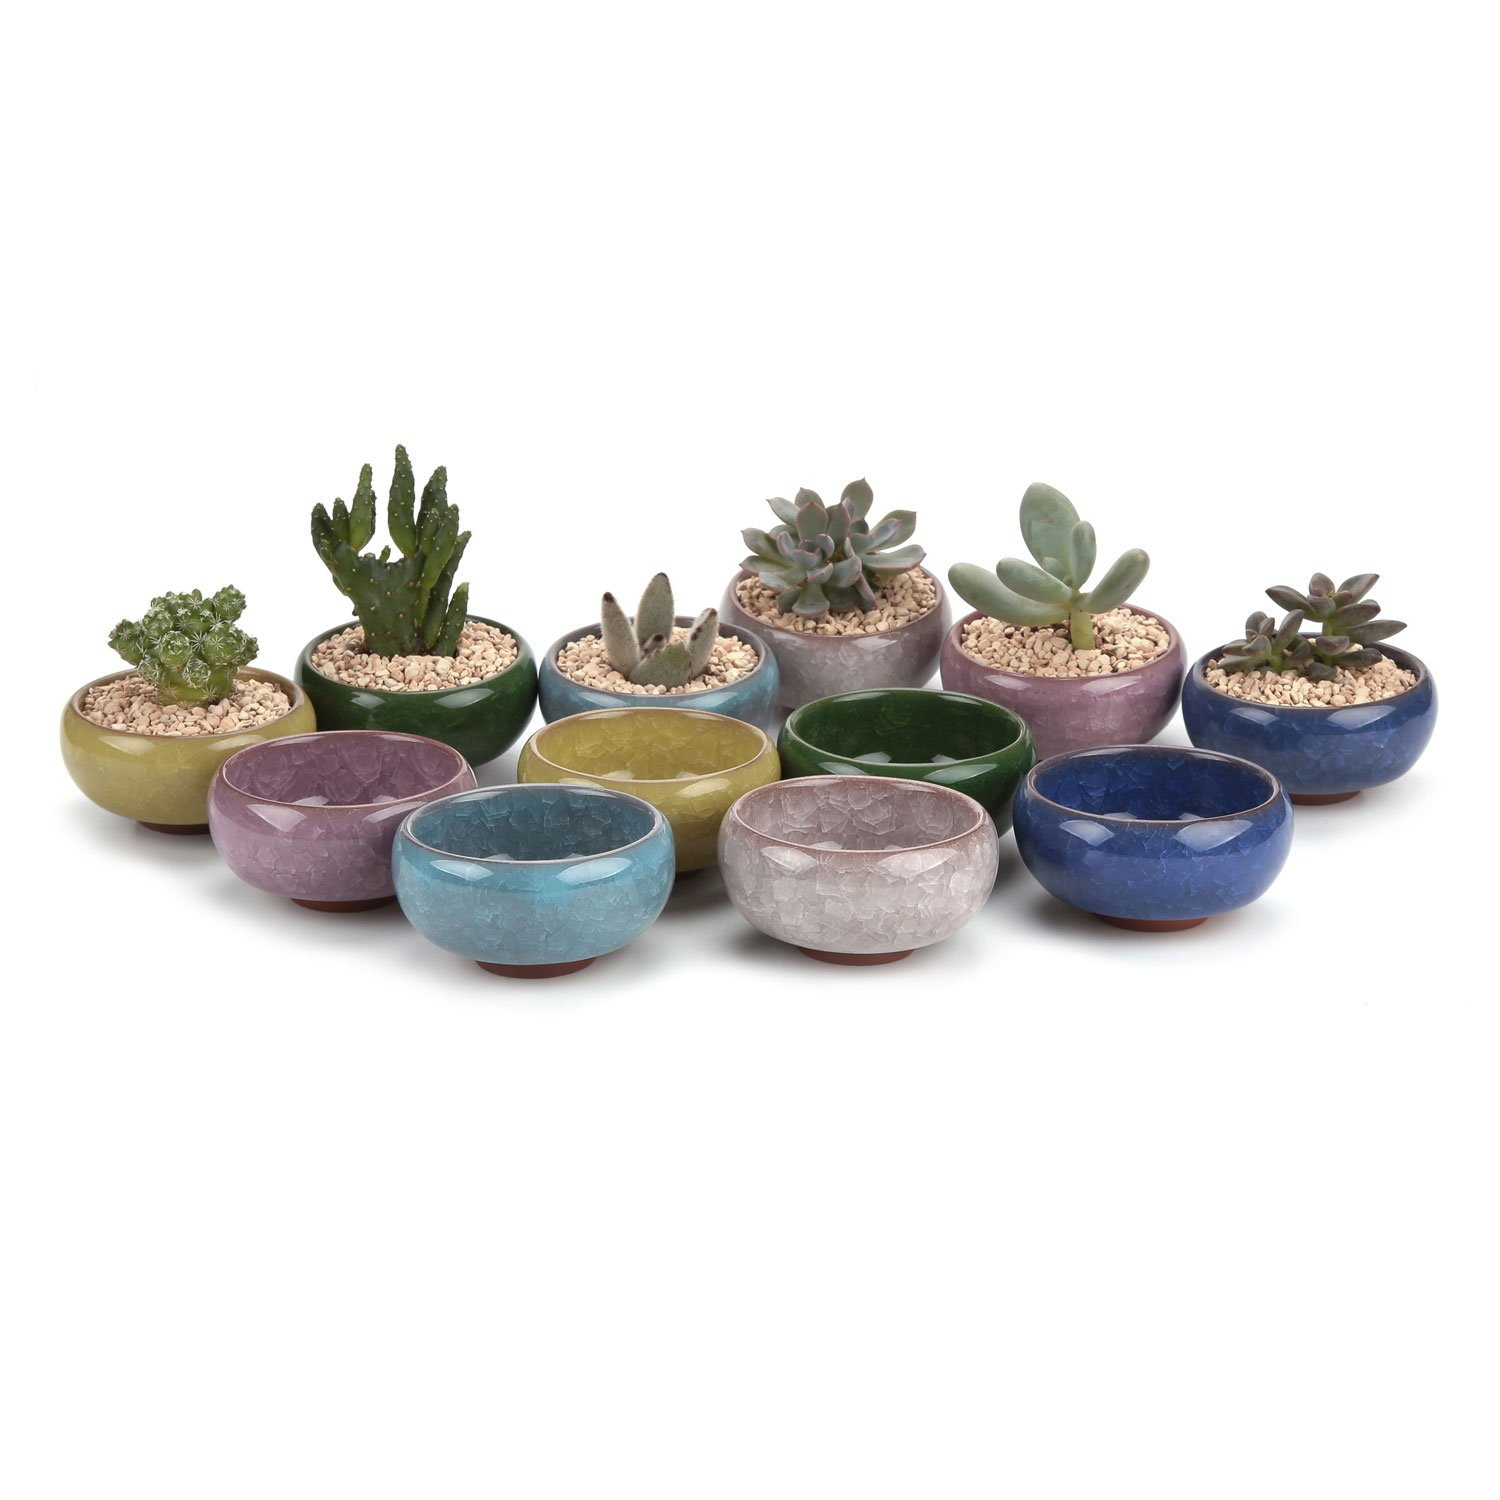 T4U 2.5 Inch Ceramic Ice Crack Zisha Serial succulent Plant Pot Cactus Plant Pot Flower Pot Container Planter Full colors Package 1 Pack of 12 by T4U